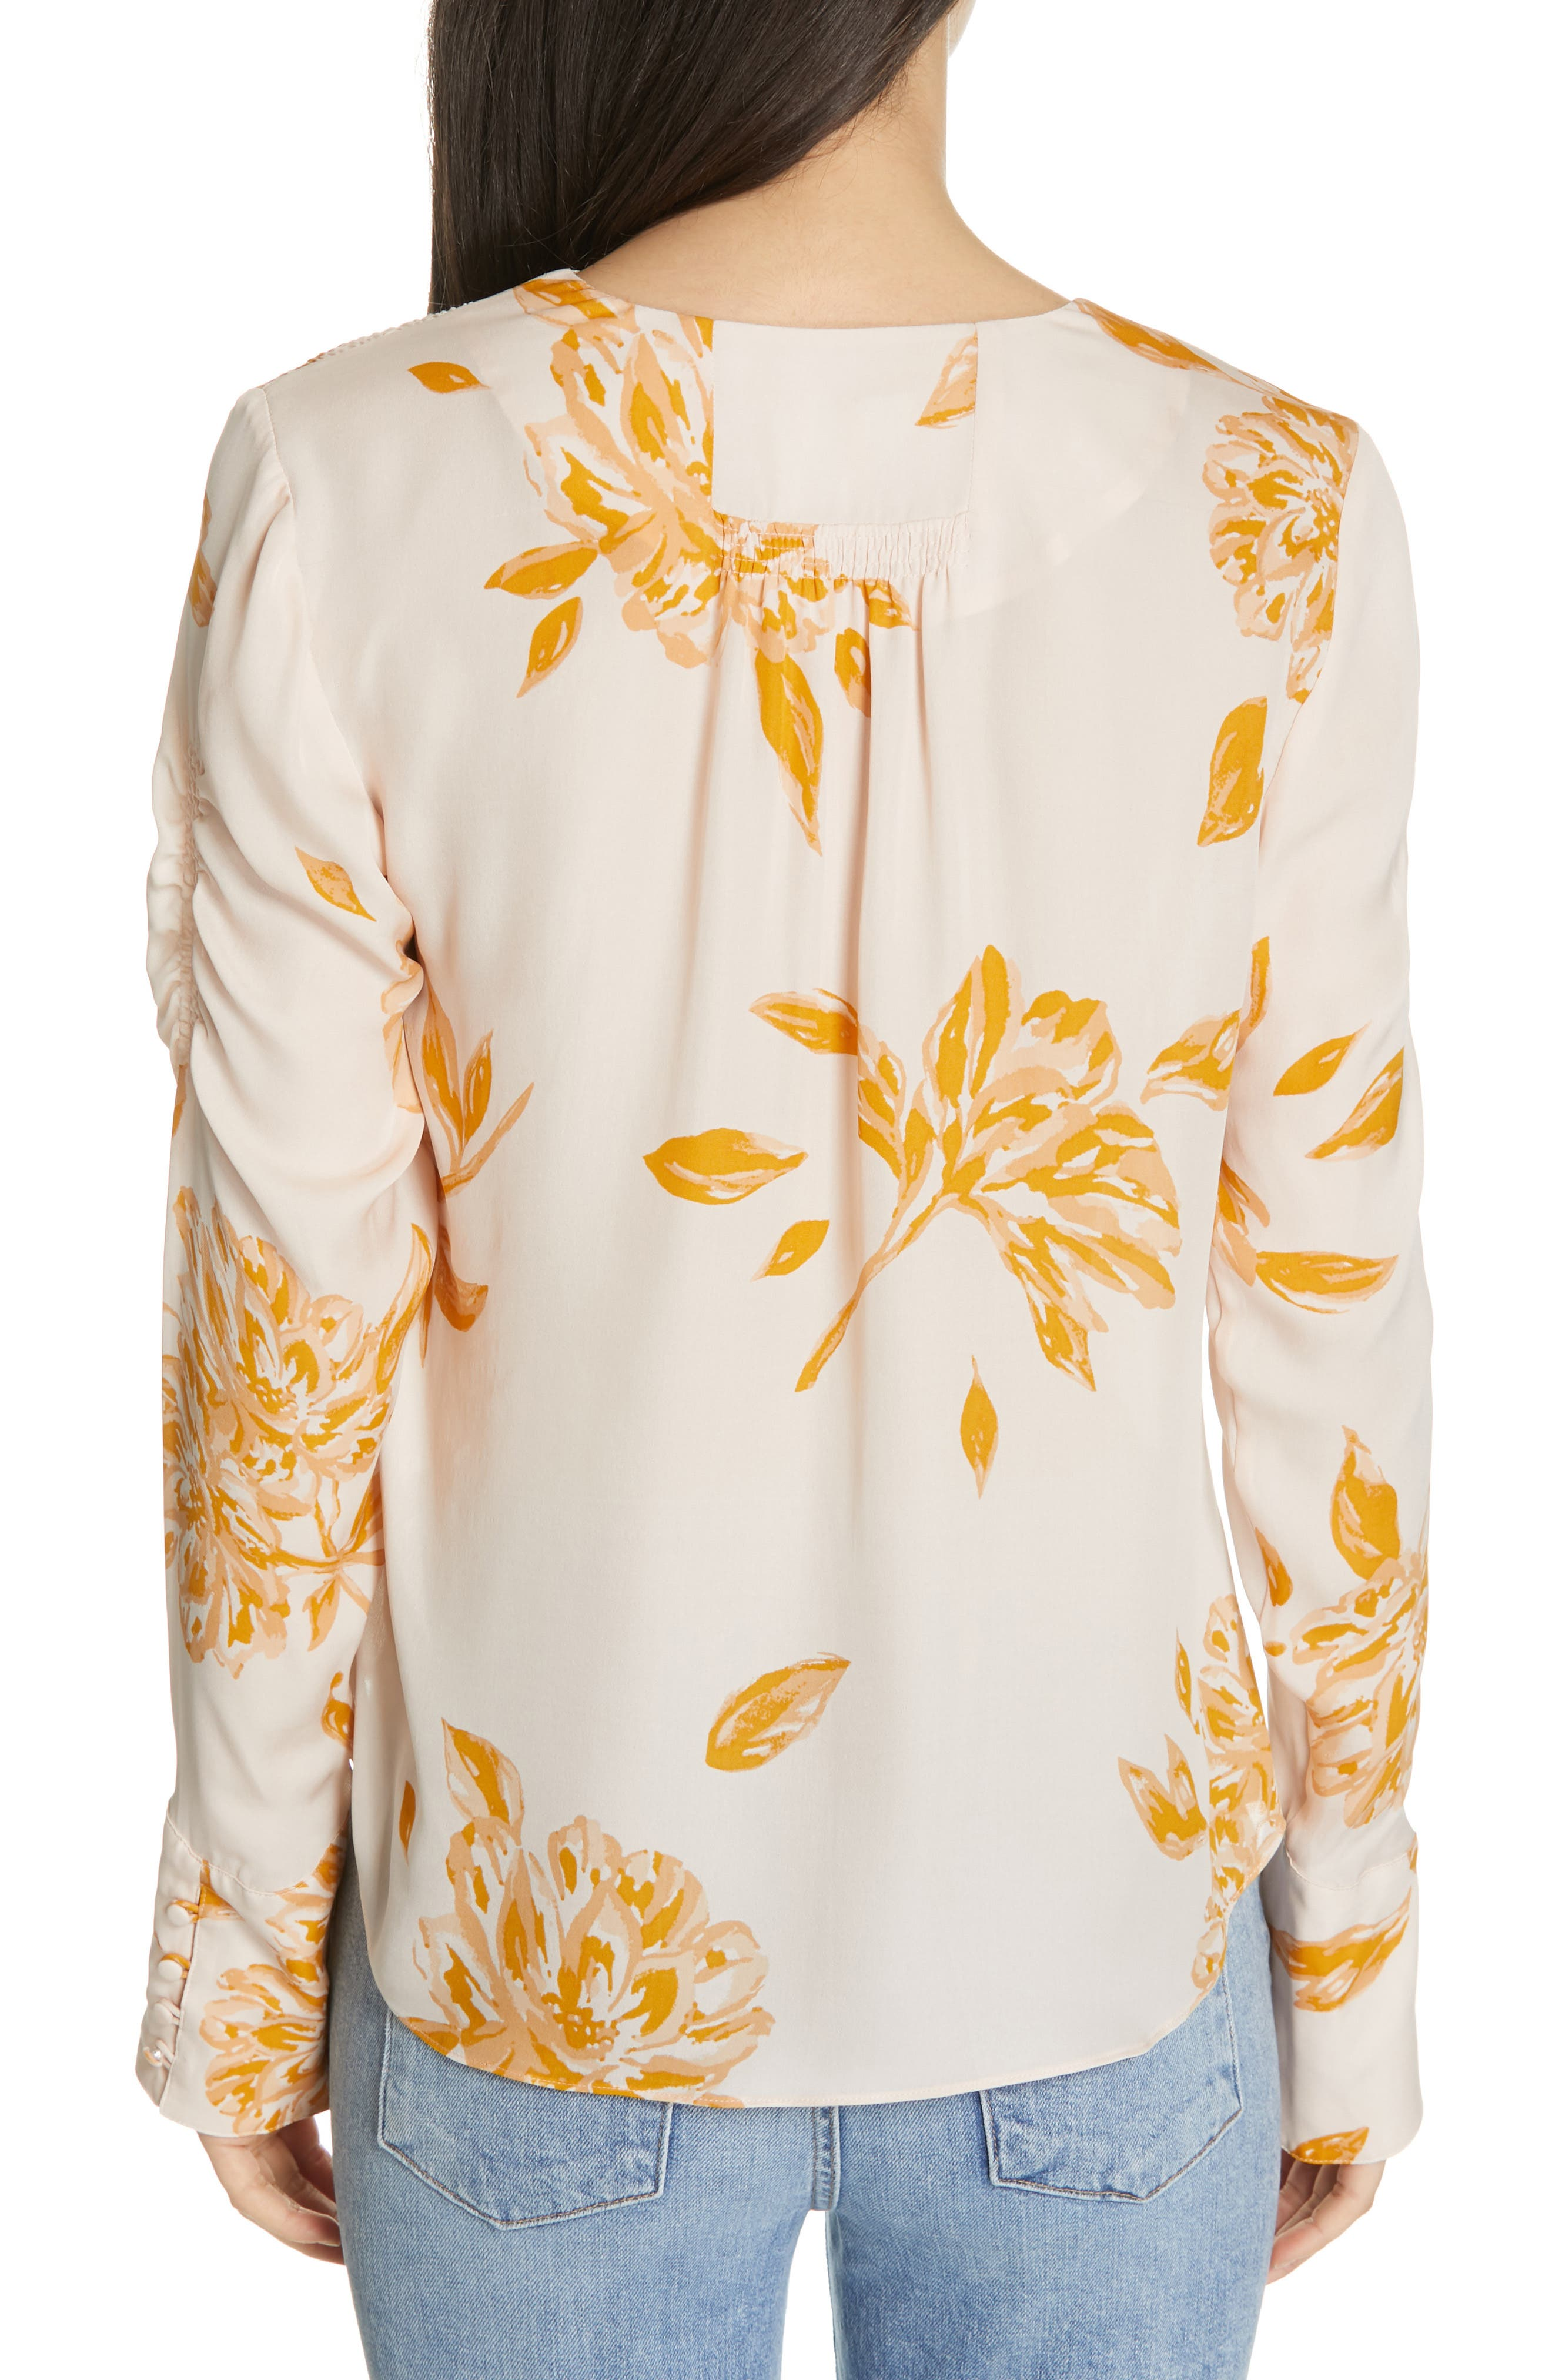 JOIE, Galvin Floral Silk Top, Alternate thumbnail 2, color, SHIMMER